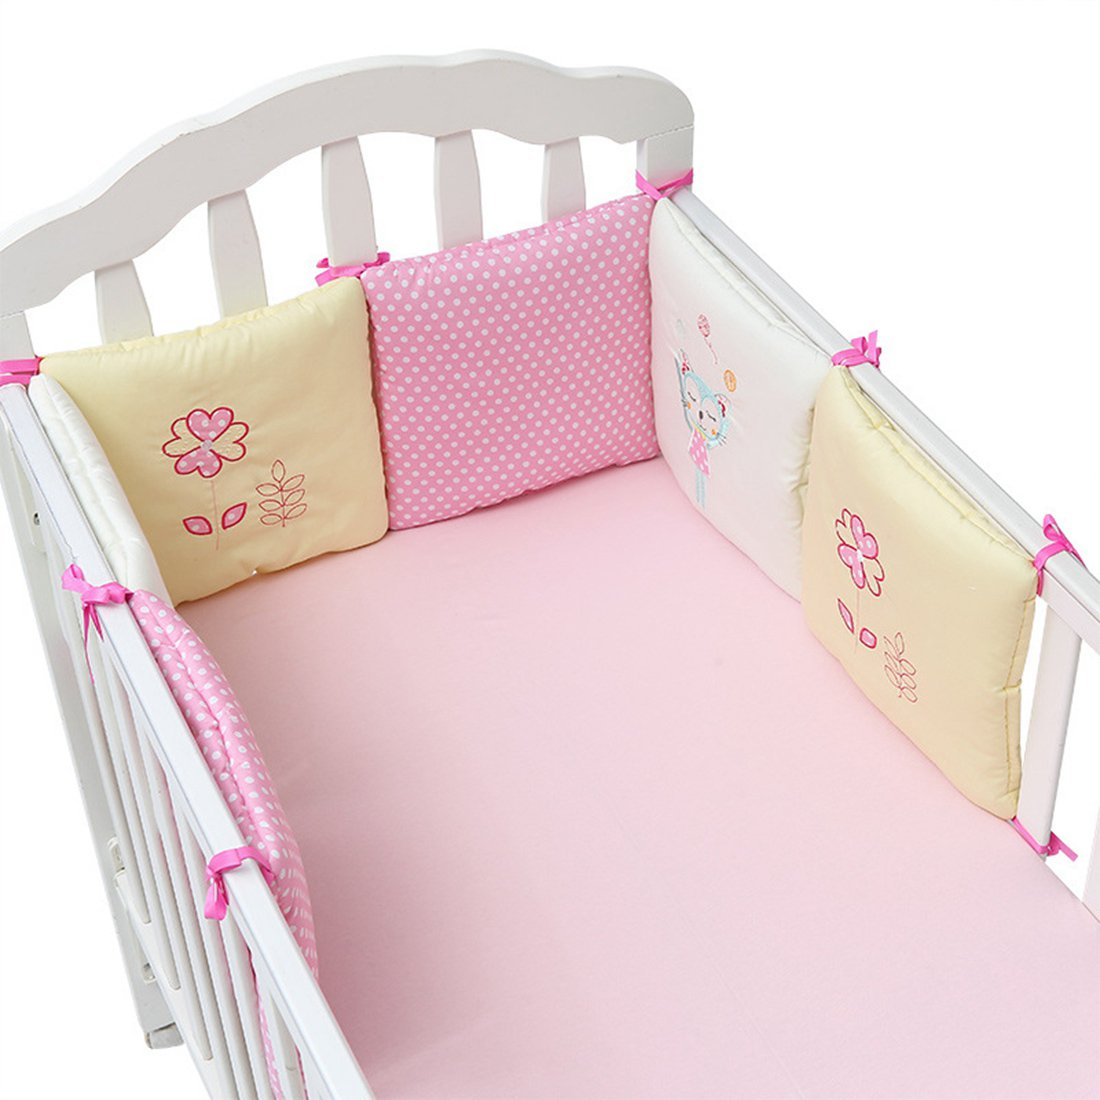 YUENA CARE Baby Bumper 6piece Toddler Crib Breathable Nursery Bed 30x 30cm Beige Beautylife88